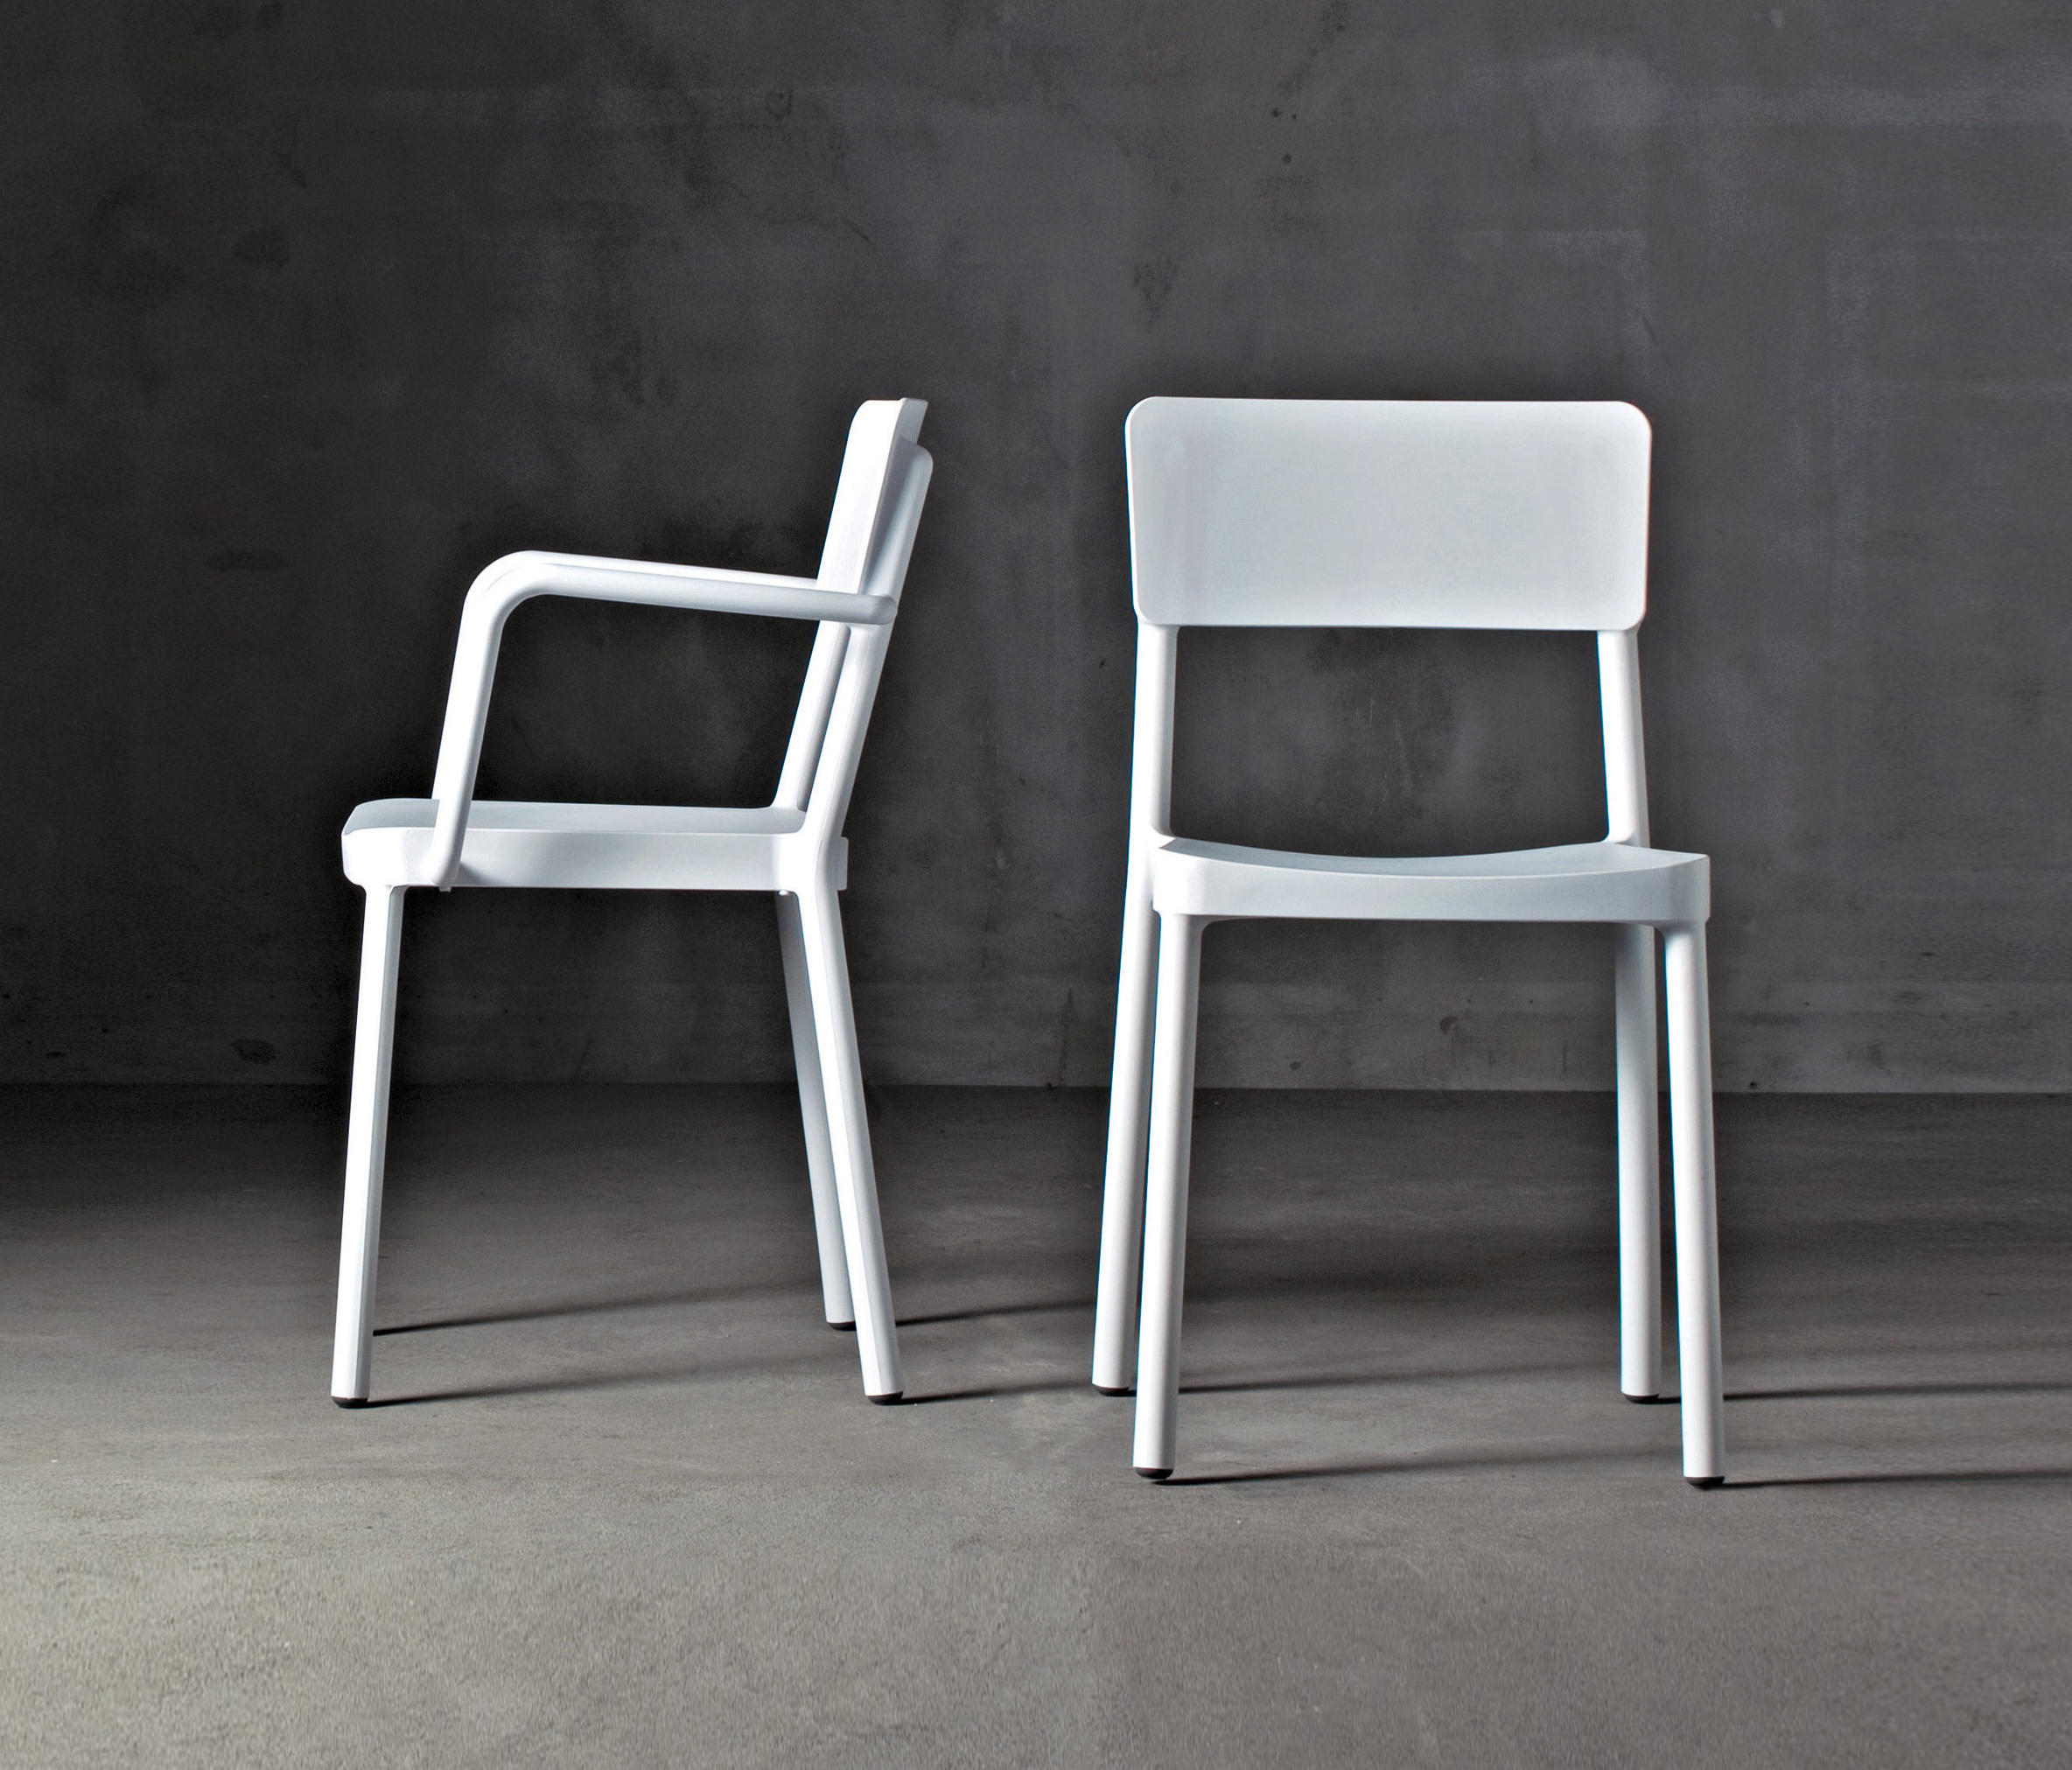 Lisboa SerralungaArchitonic From Lisboa Chairs Chairs SerralungaArchitonic SerralungaArchitonic Lisboa From Chairs From Igvbf7m6Yy